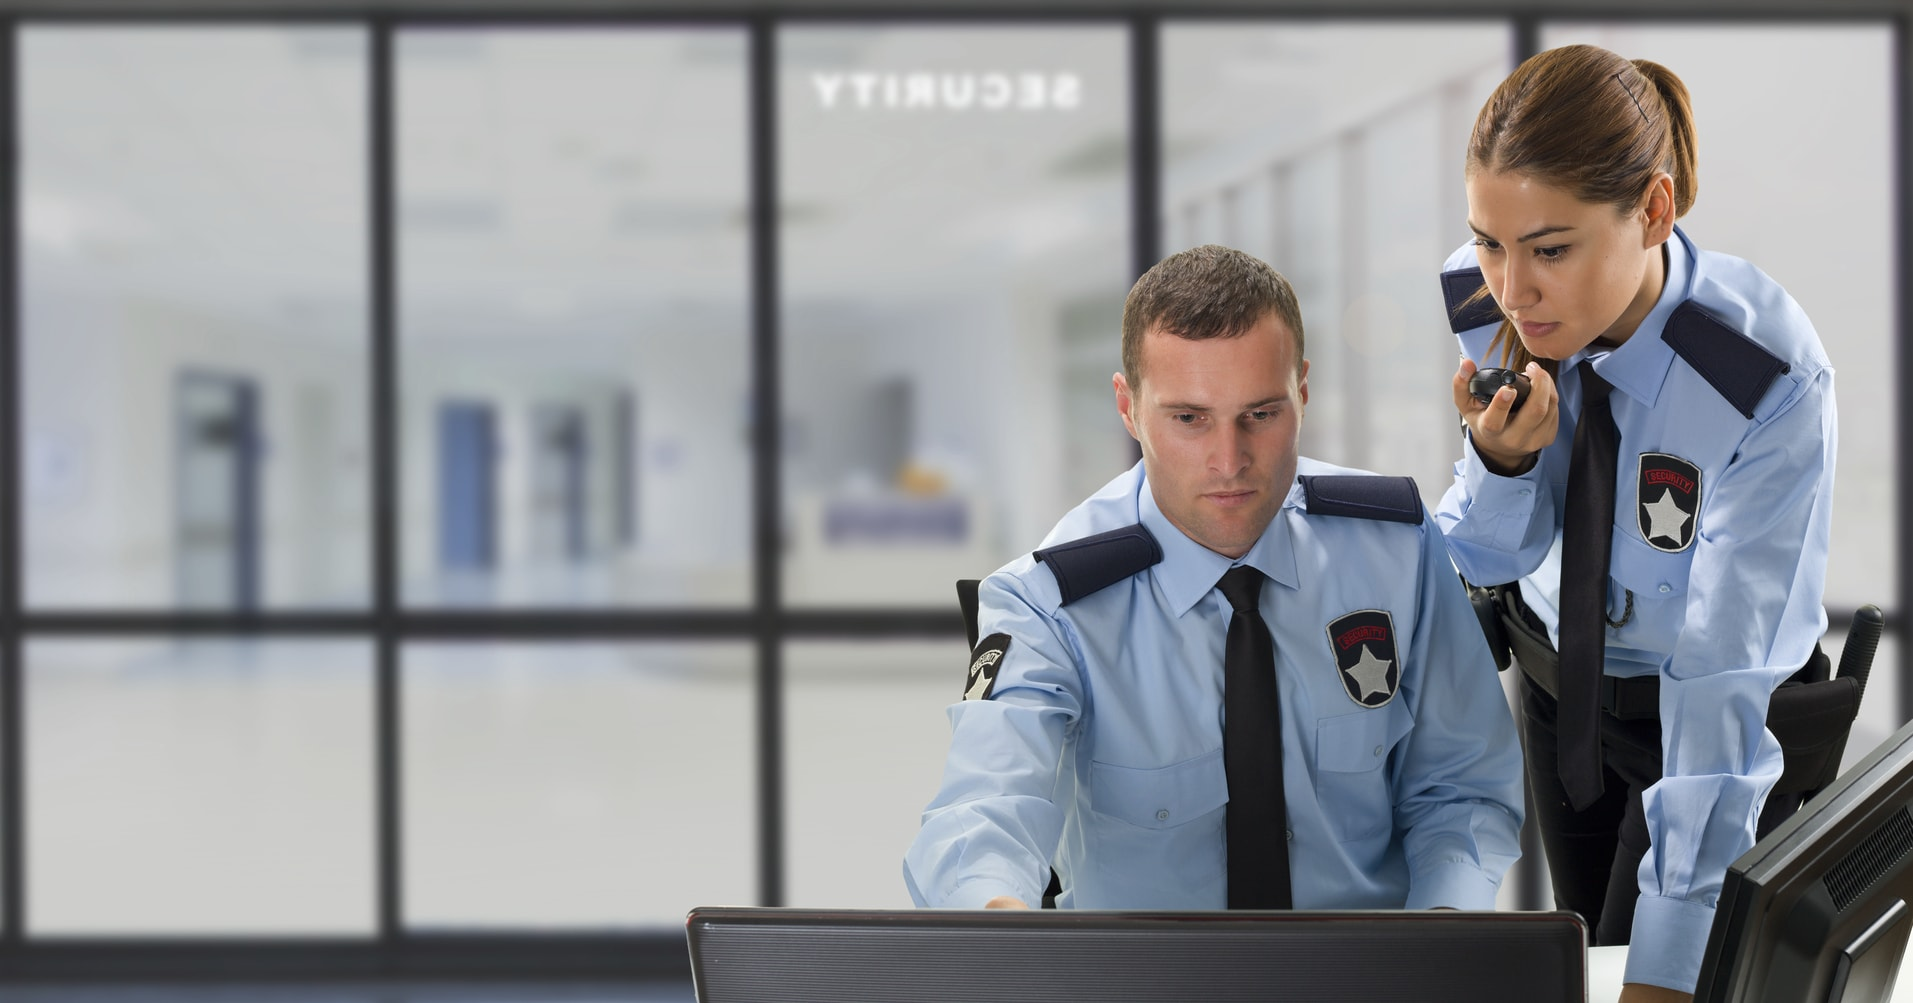 security officer staffing